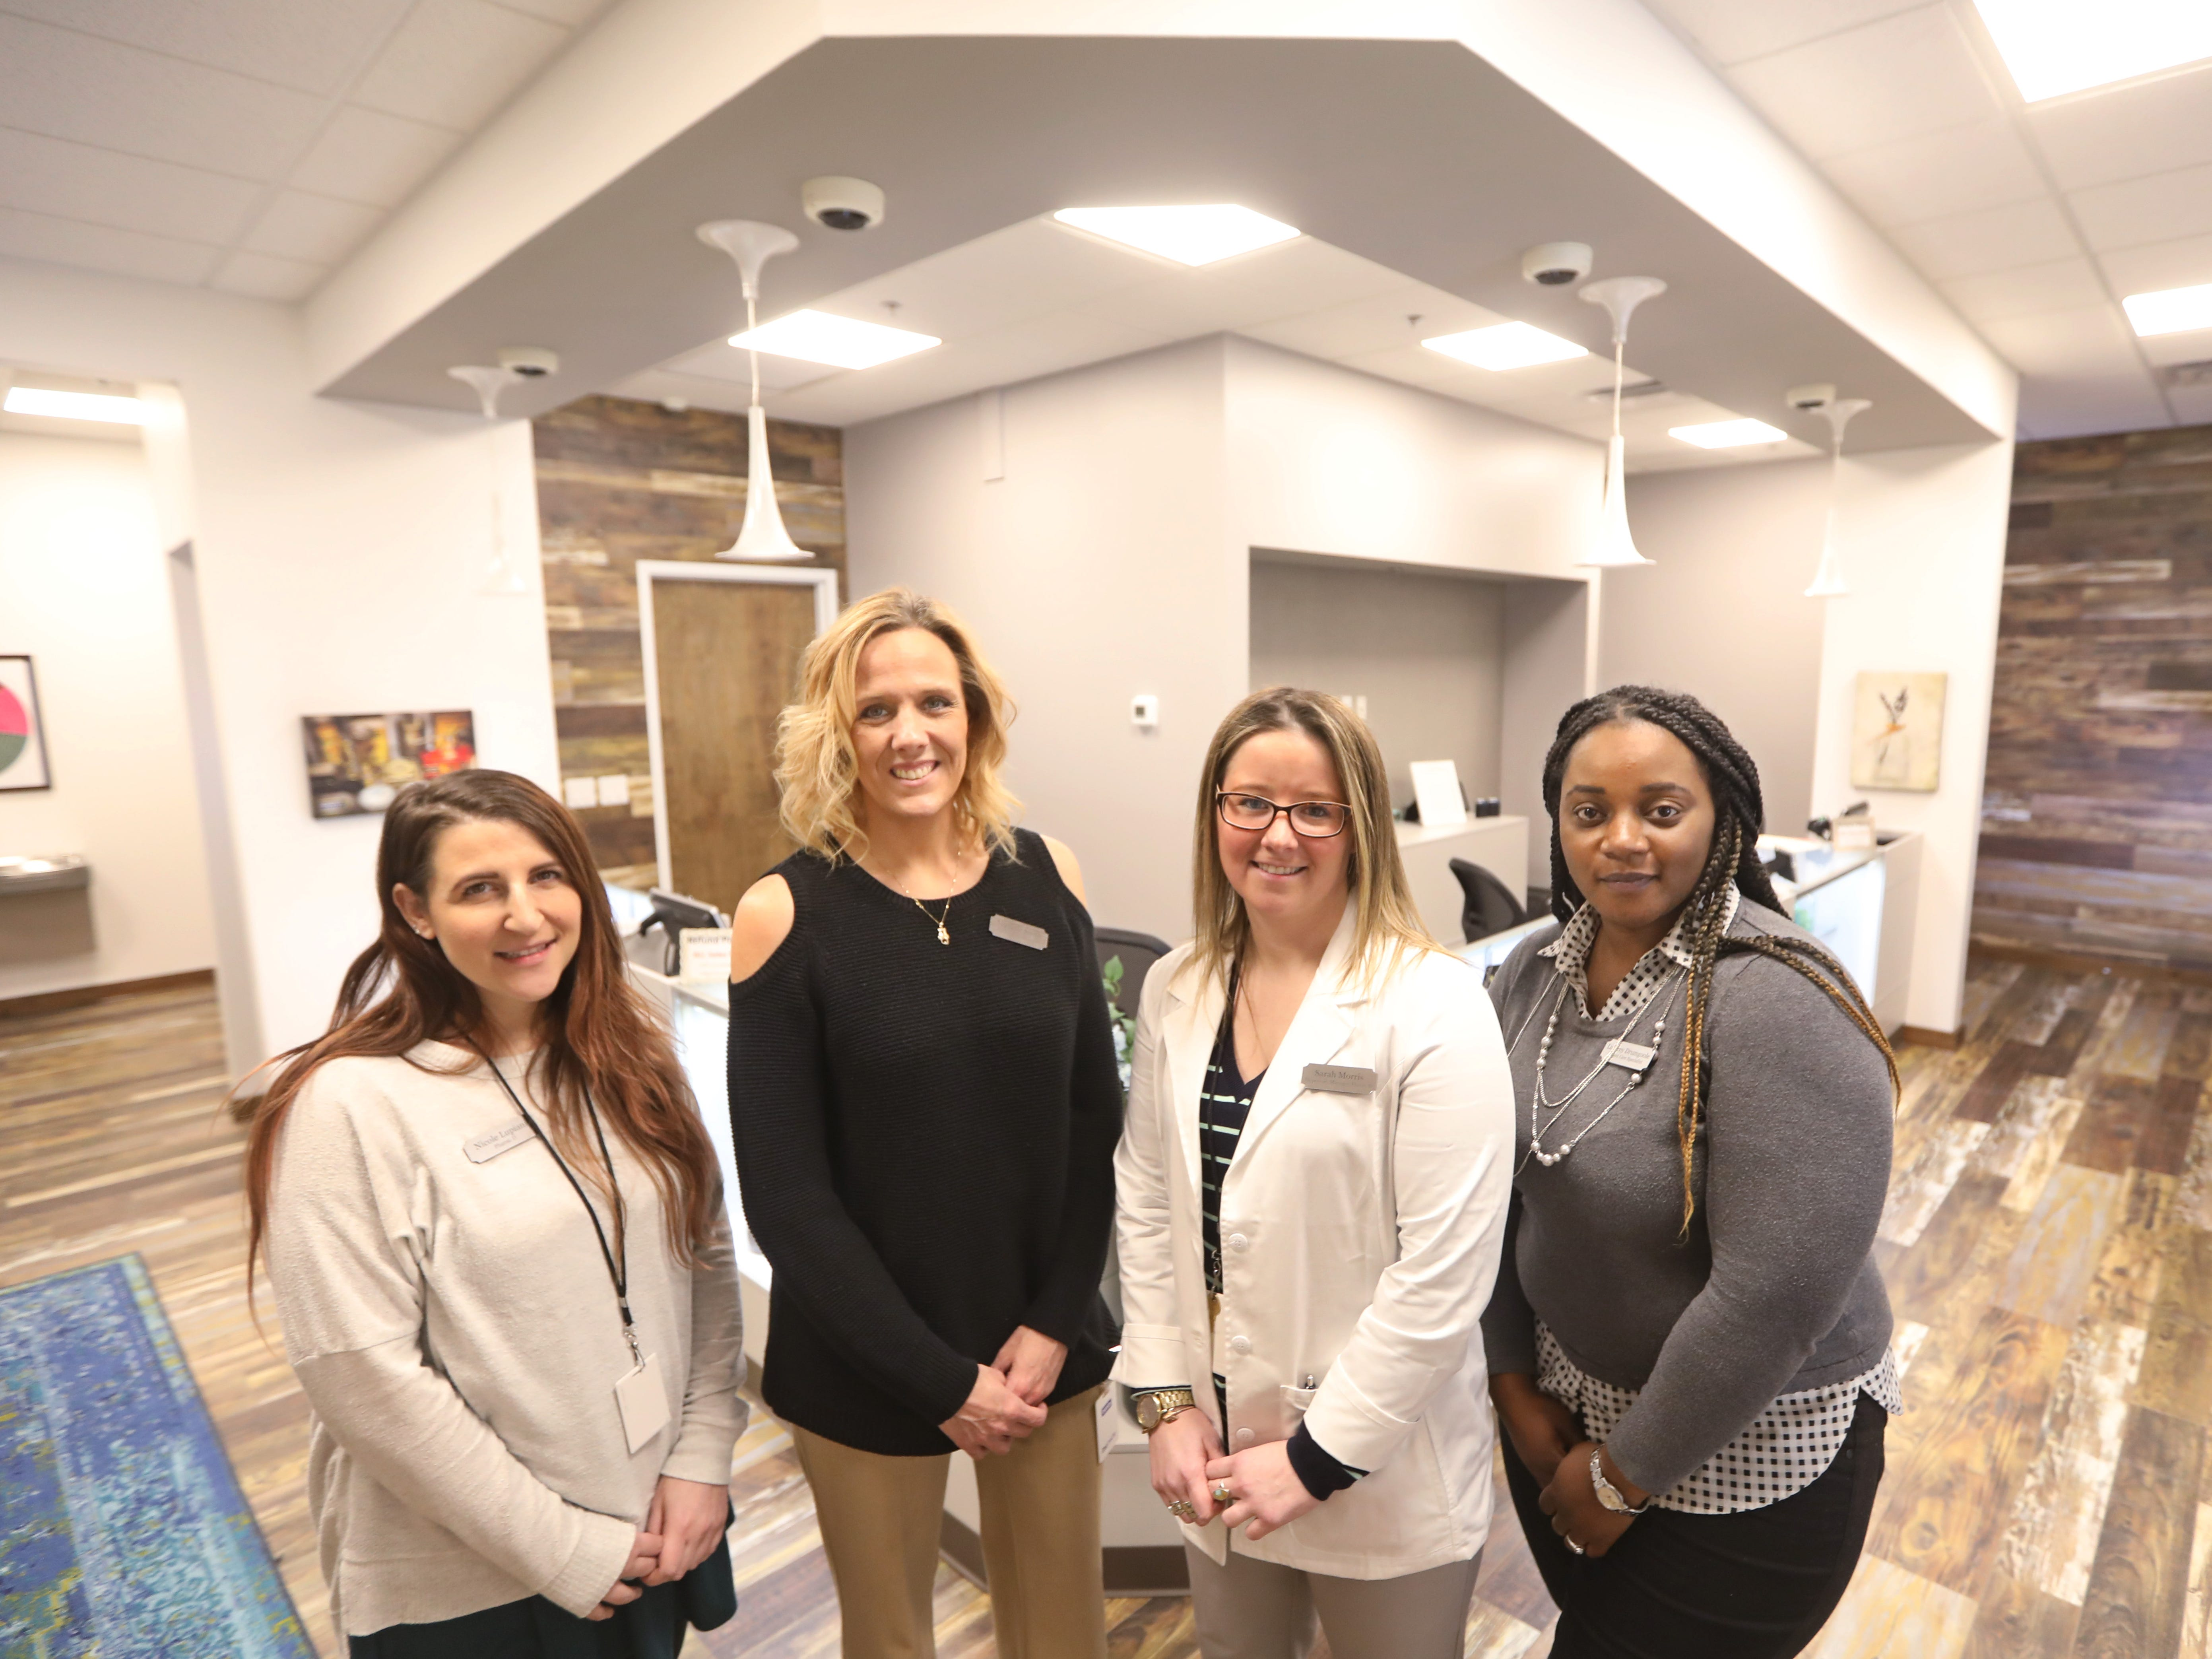 The staff at Fp Wellness Rochester: Pictured from left are Nicole Lupiani, Michelle Smith, Sarah Morris and Luarrey Drumgoole.